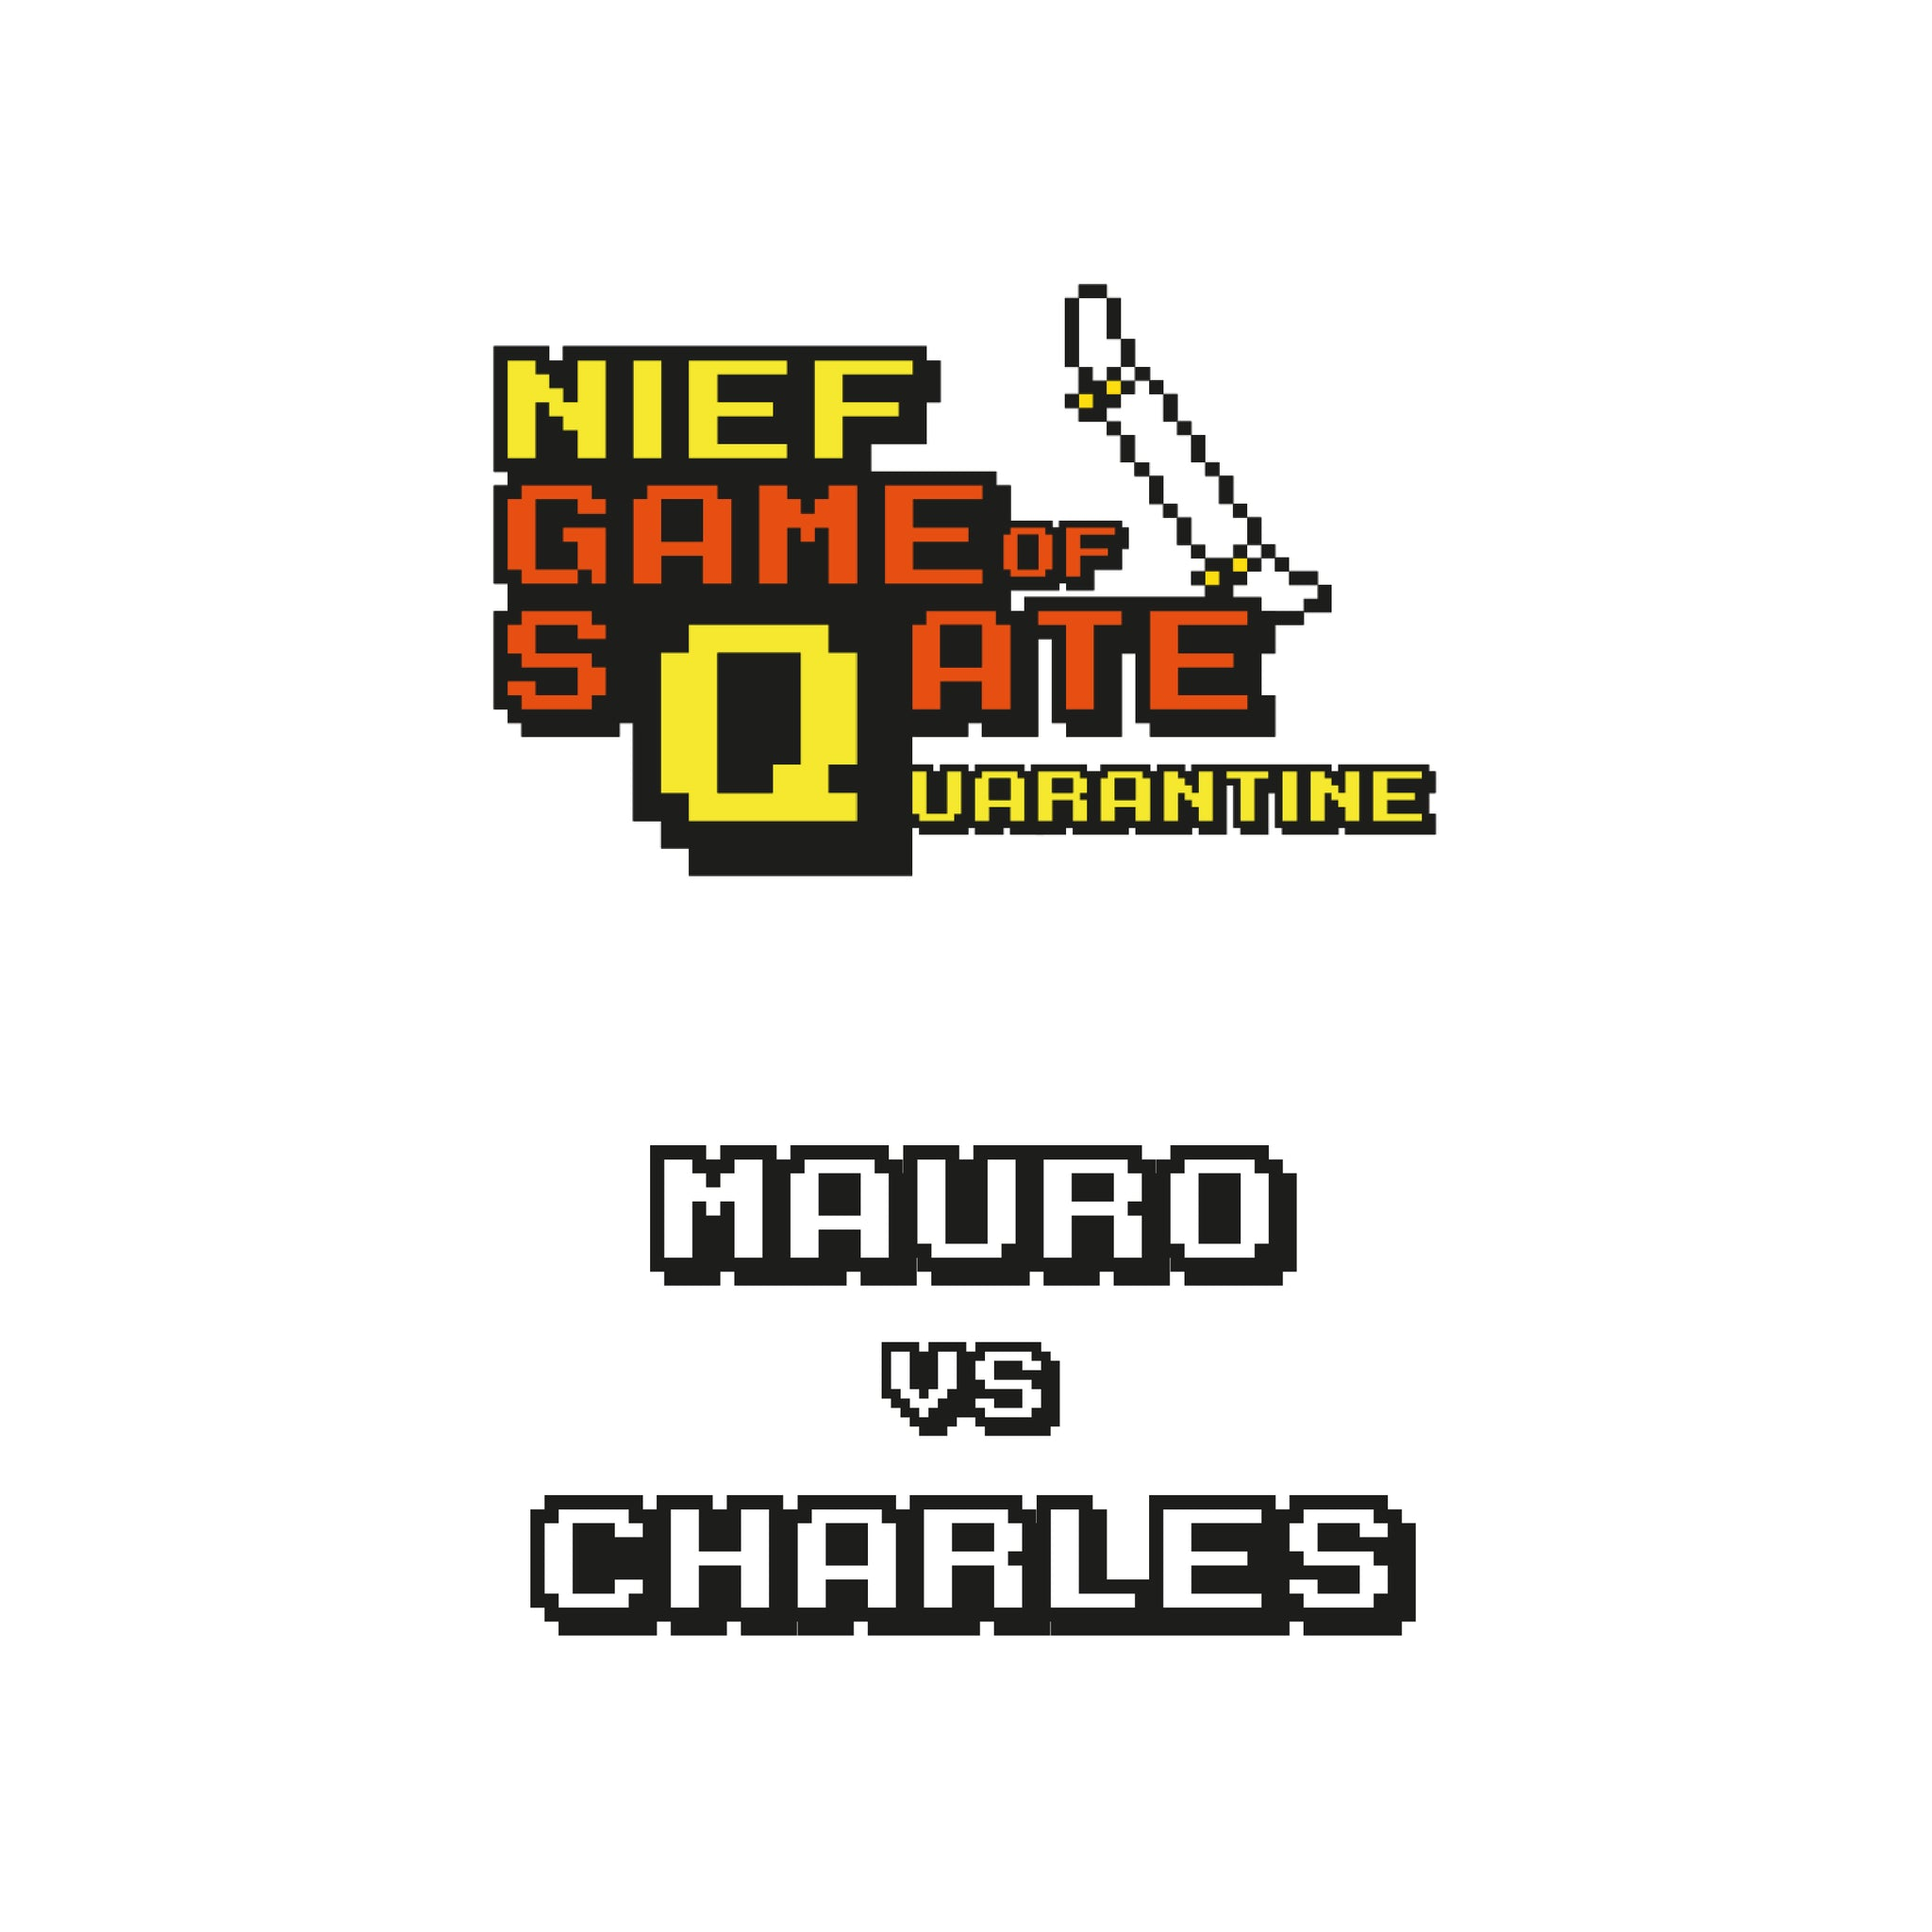 GAME 5: MAURO VS CHARLES